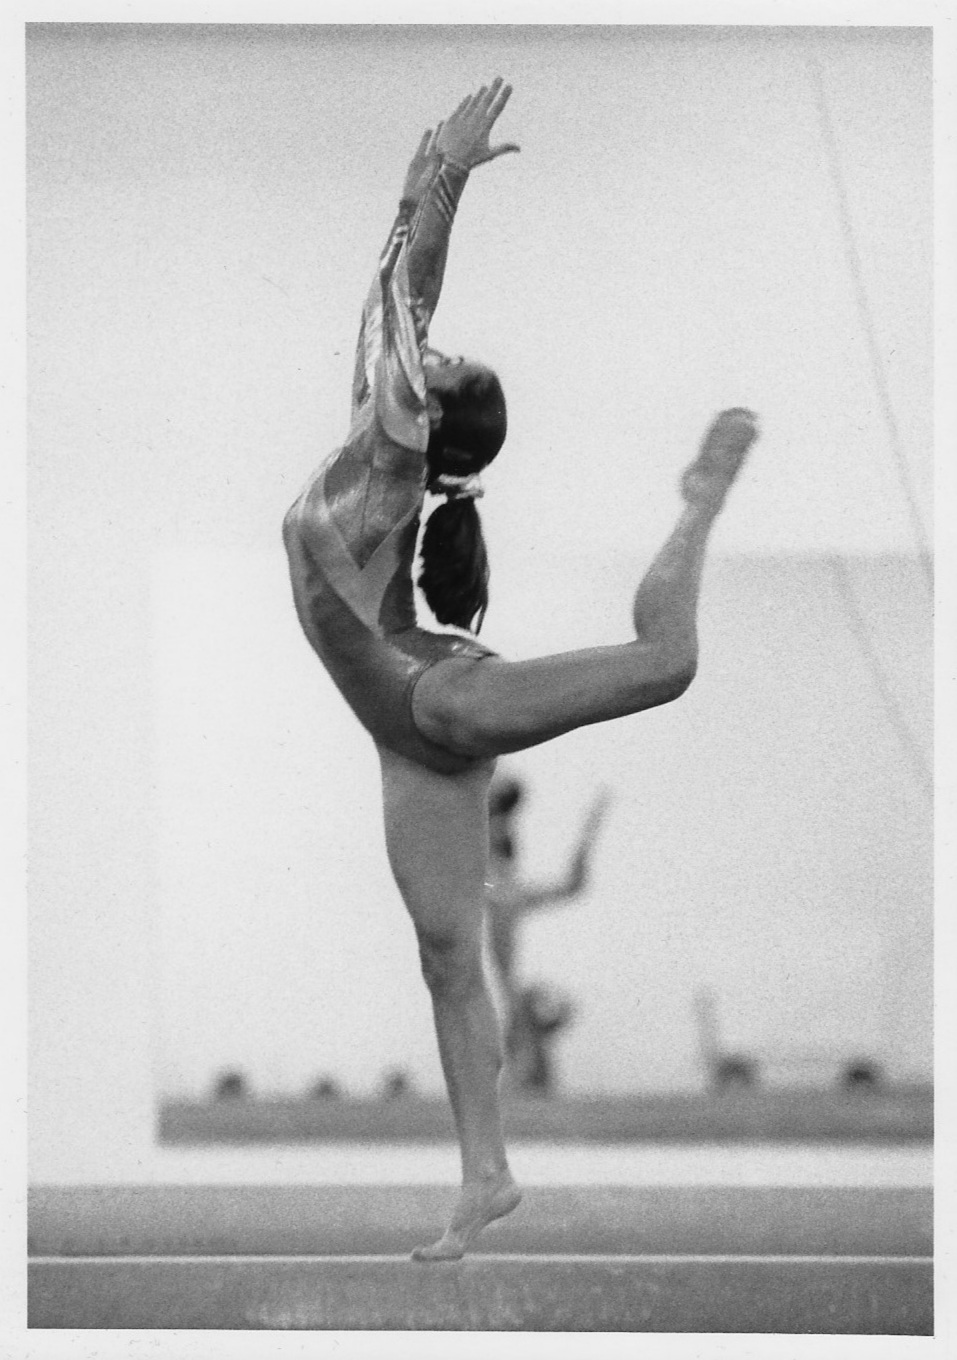 Maureen's daughter, Erica, in action as a gymnast earthside.